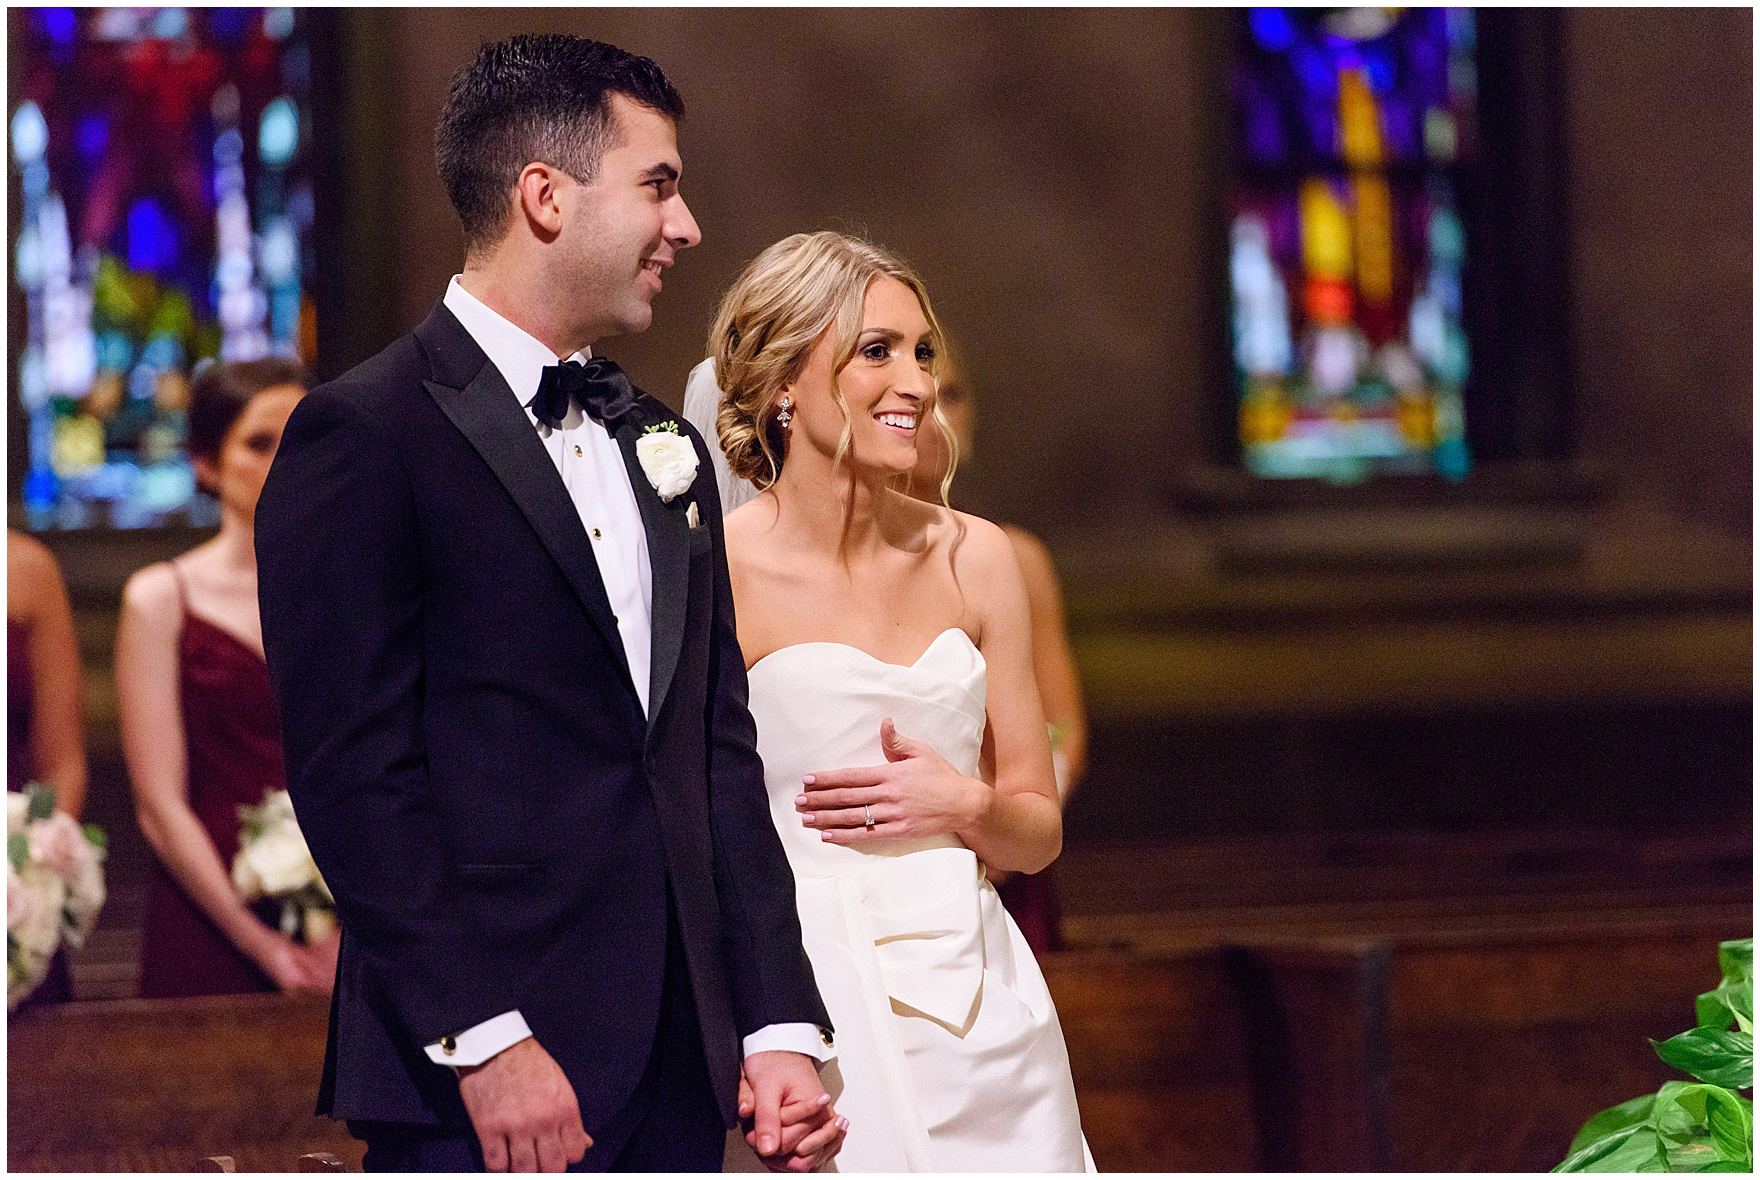 The bride and groom laugh during a St. Clement Germania Place Chicago wedding.